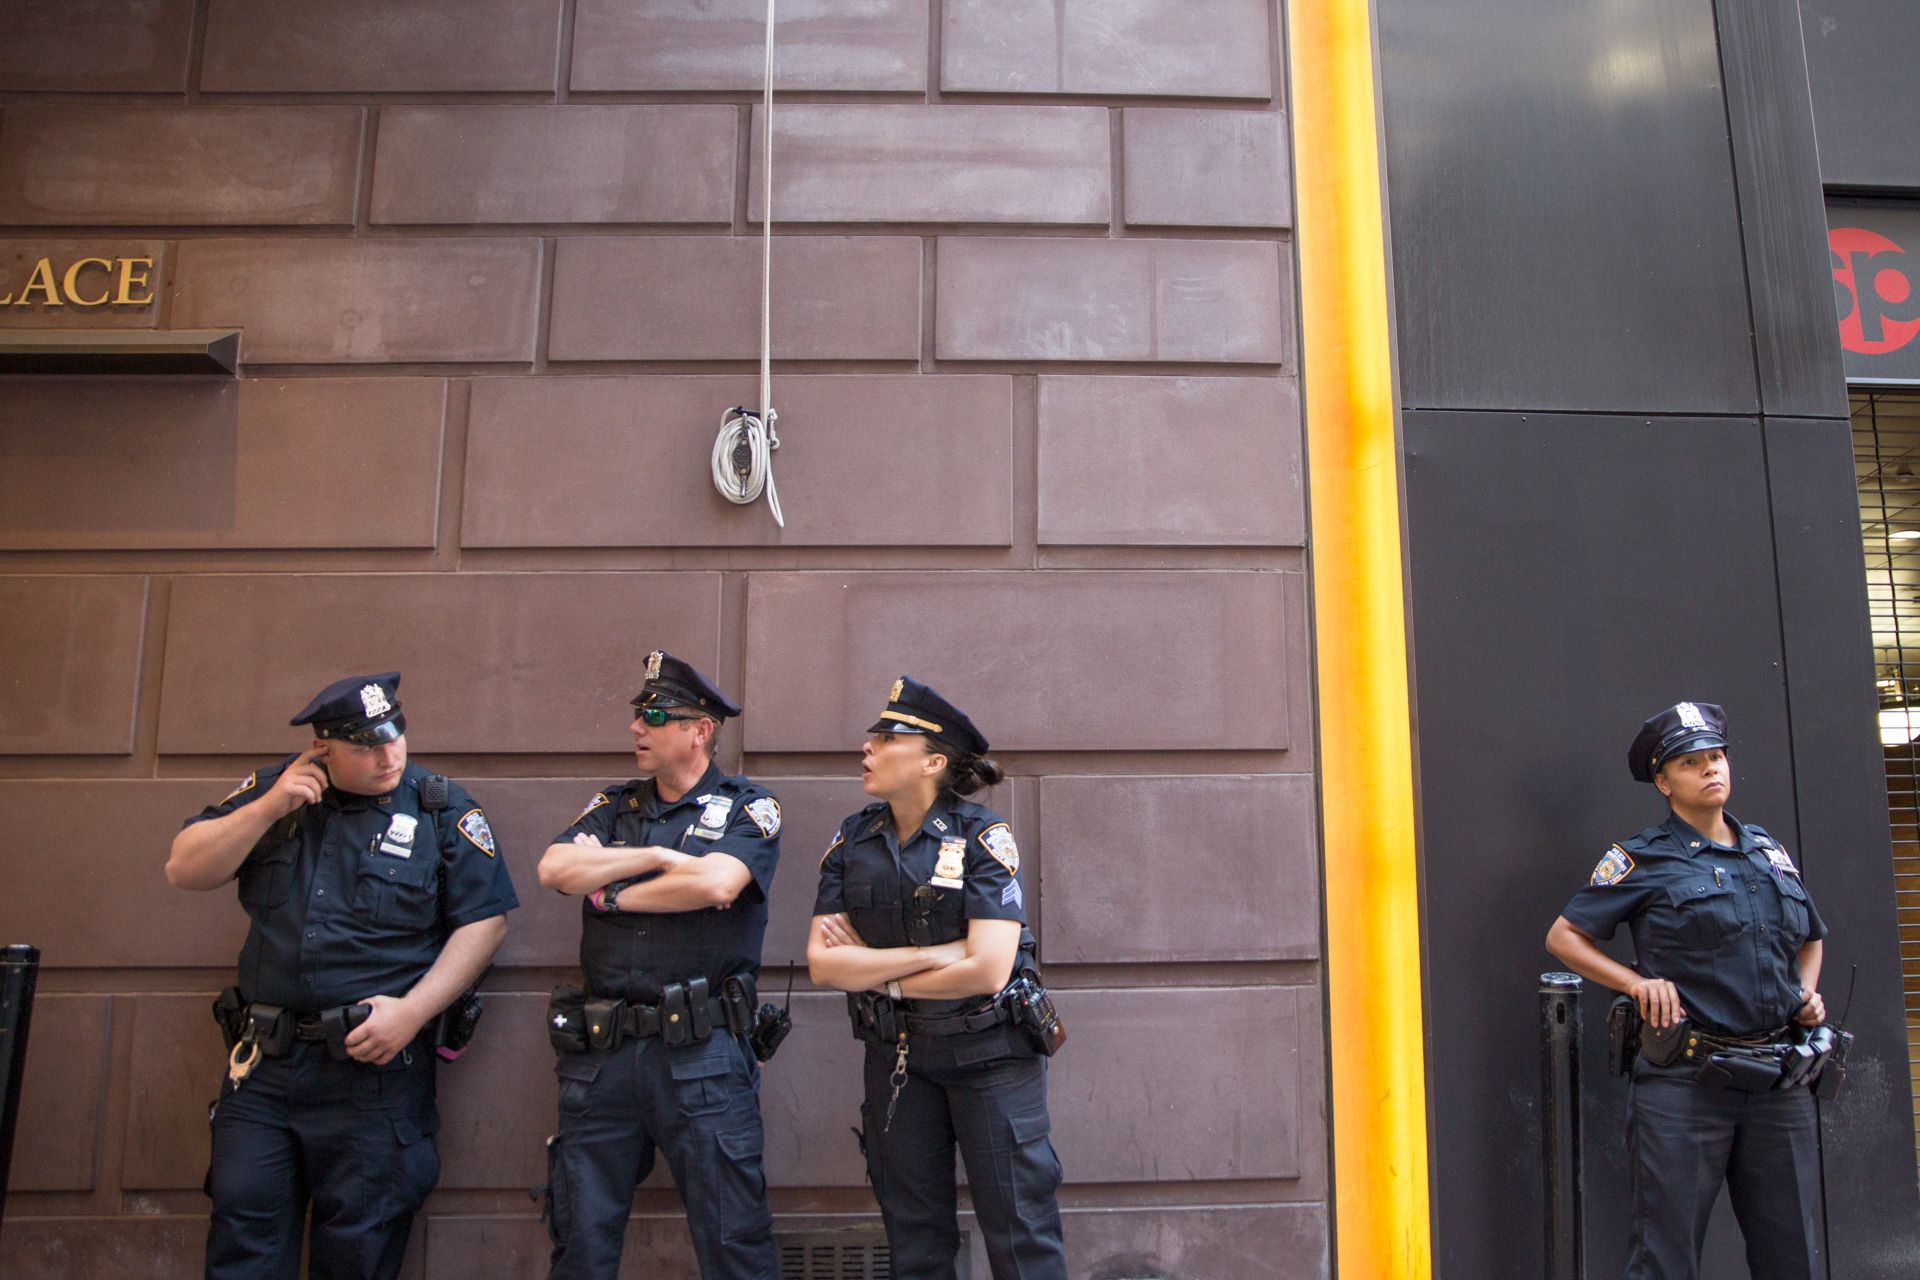 NYC's Finest On the Job?